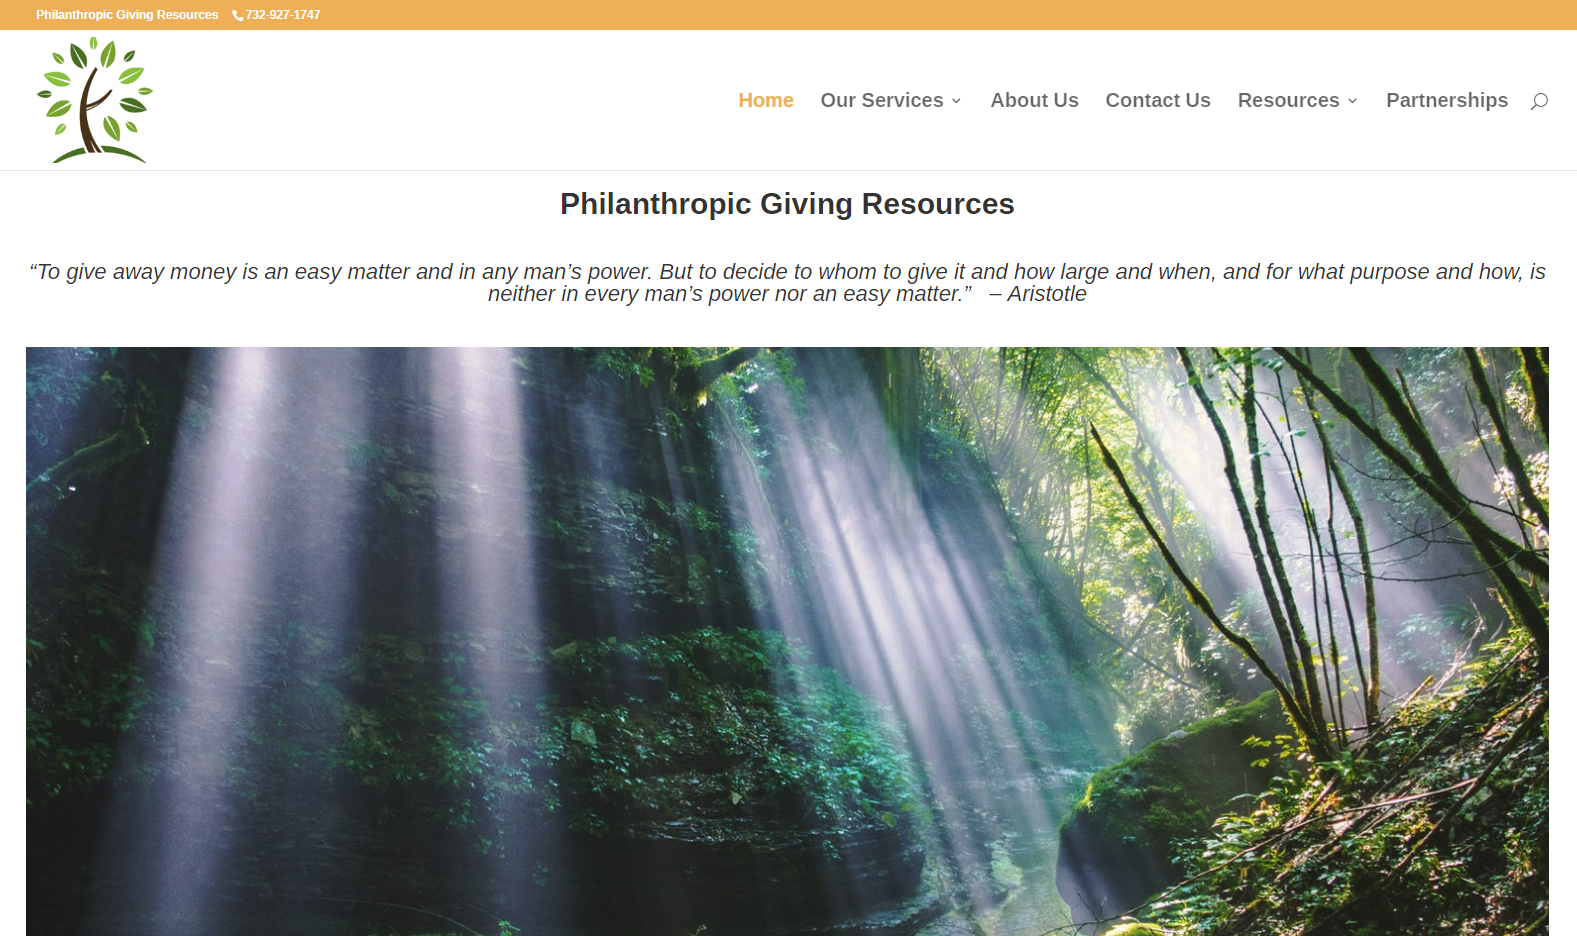 Philanthropy Giving Resources